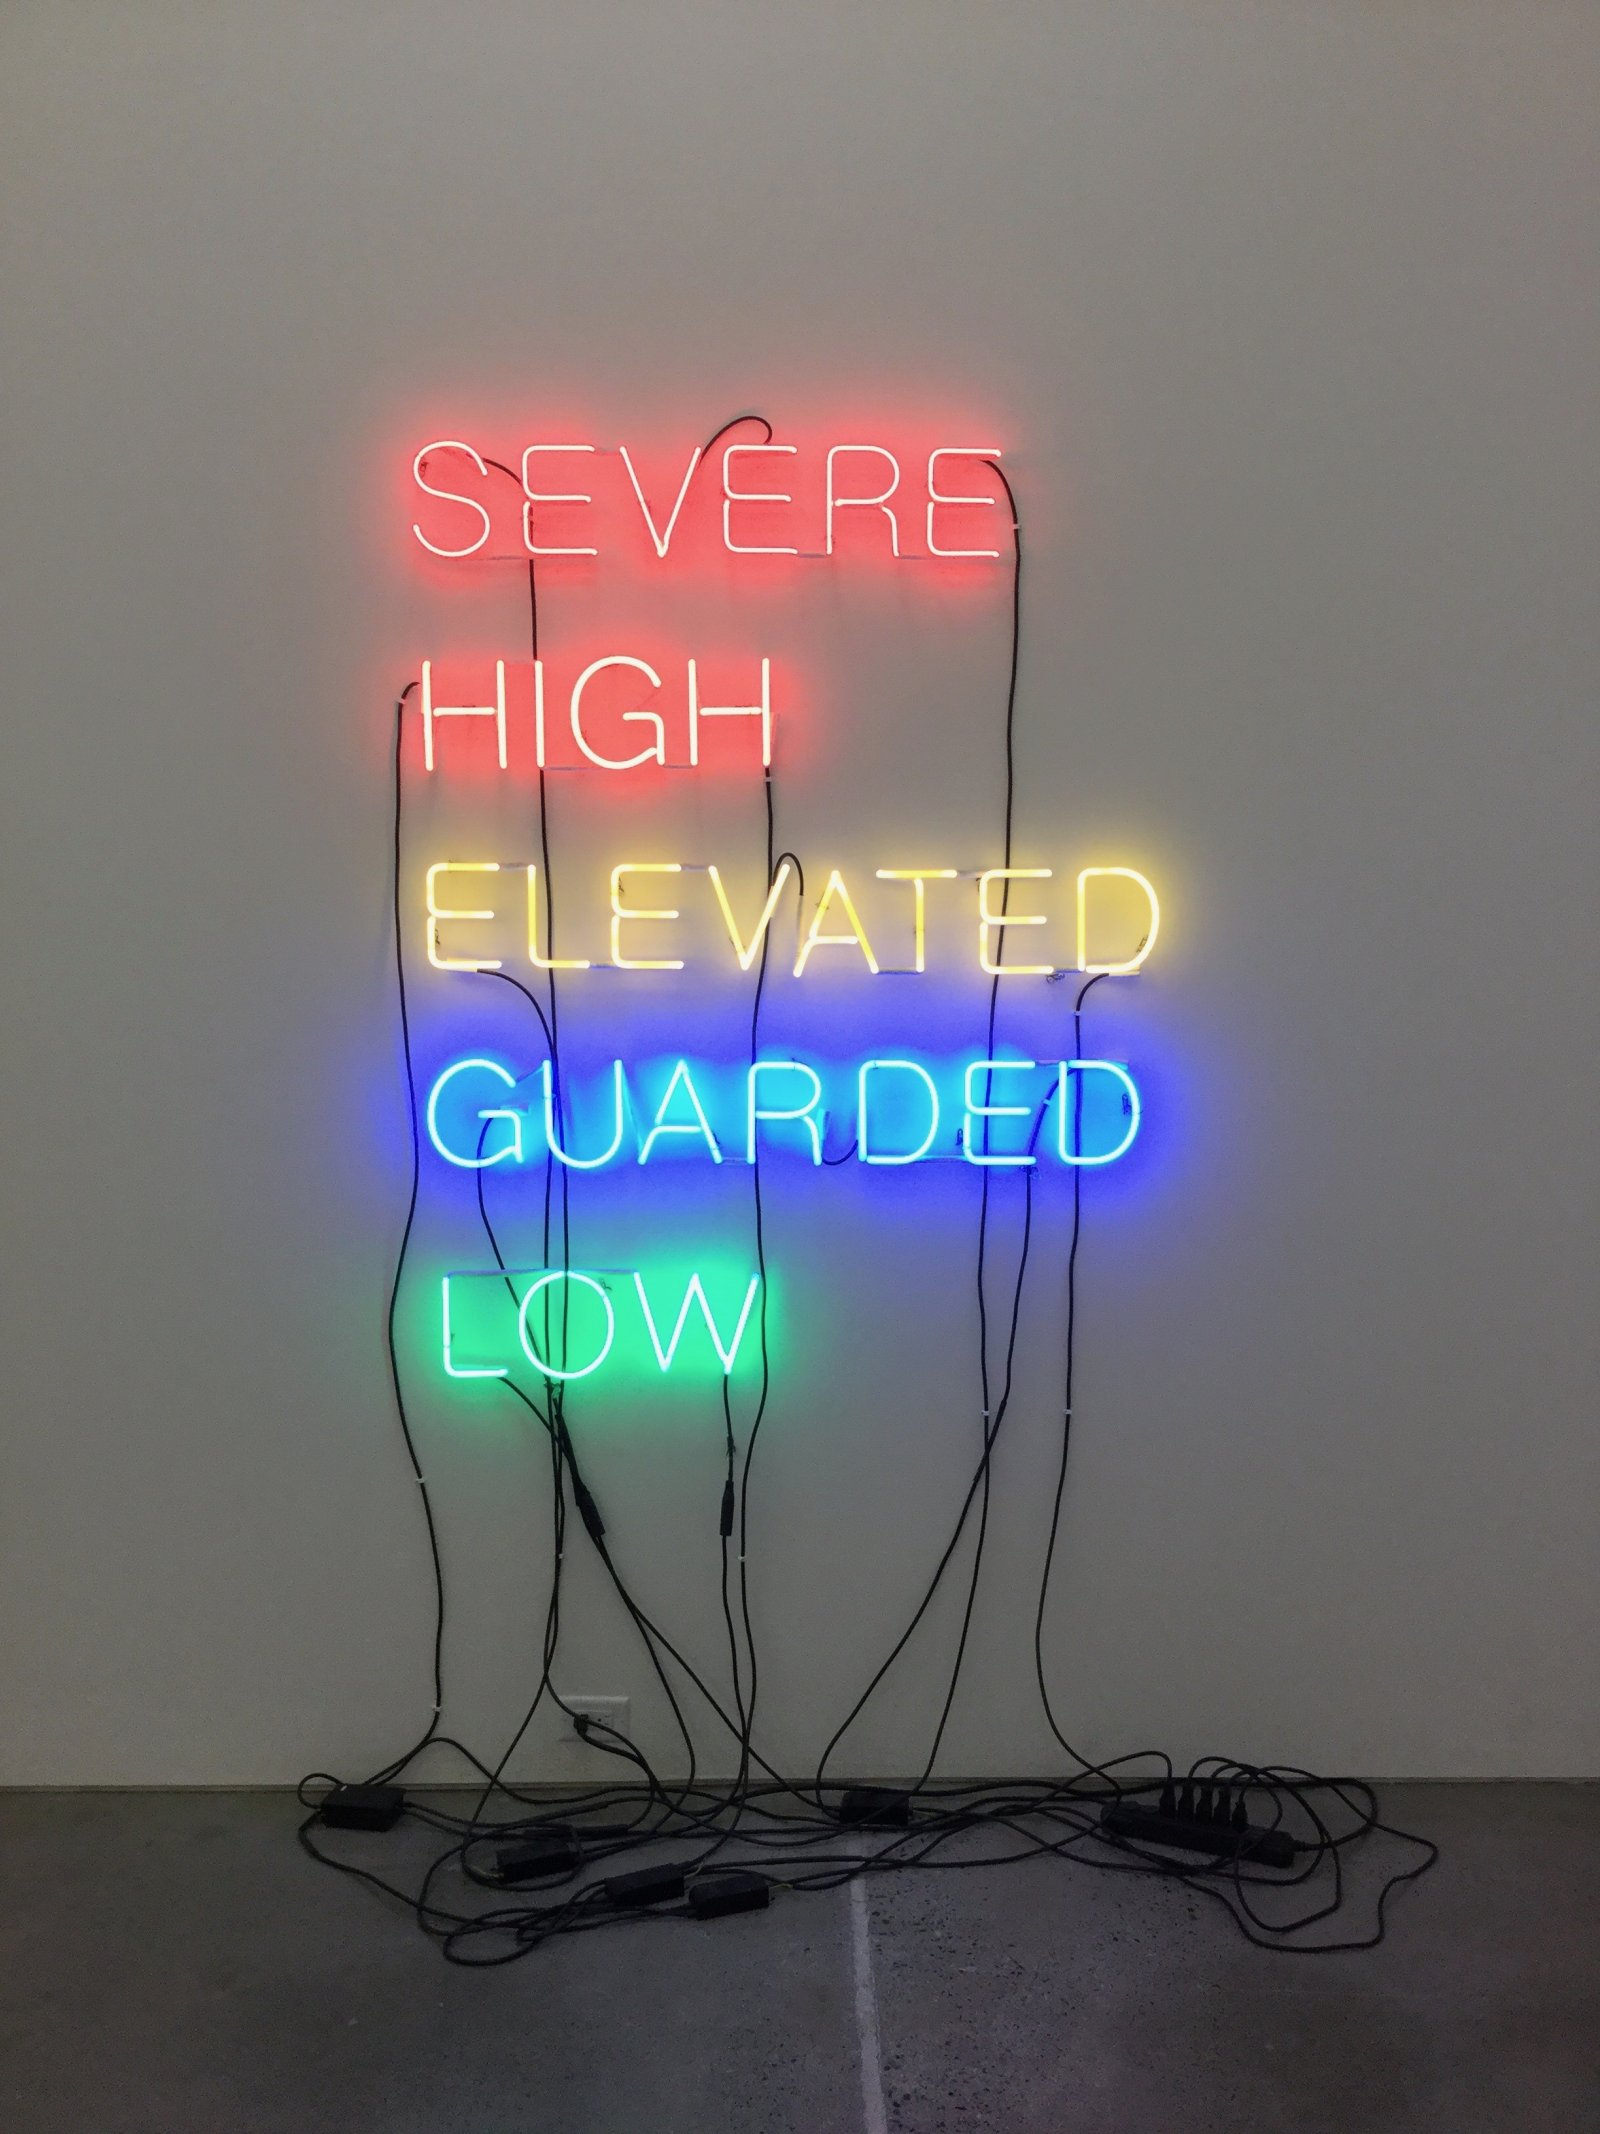 Ron Terada, Five Words in Coloured Neon, 2003, red, orange, yellow, blue and green neon, 67 x 50 x 3 in. (170 x 127 x 8 cm)